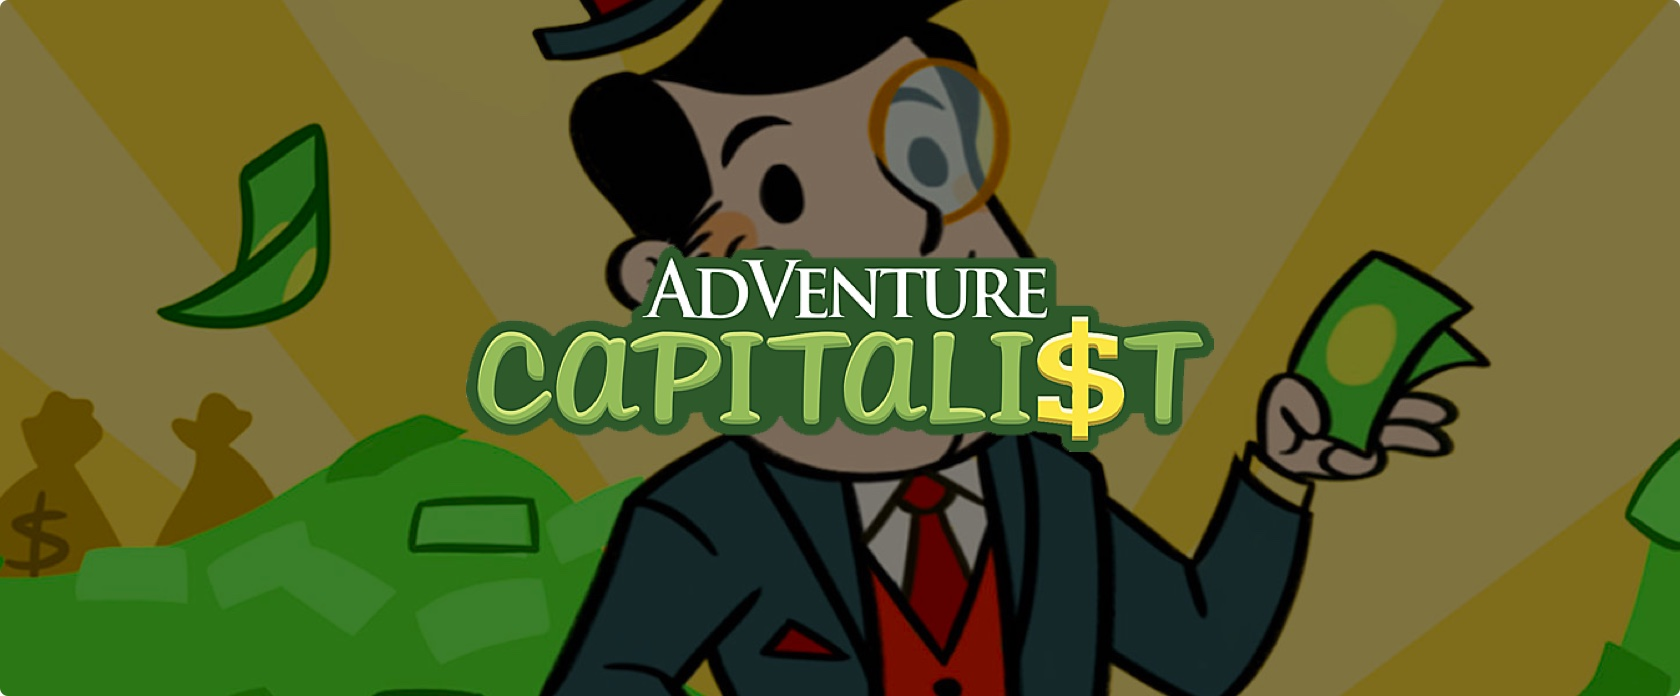 Adventure Capitalist promotion image